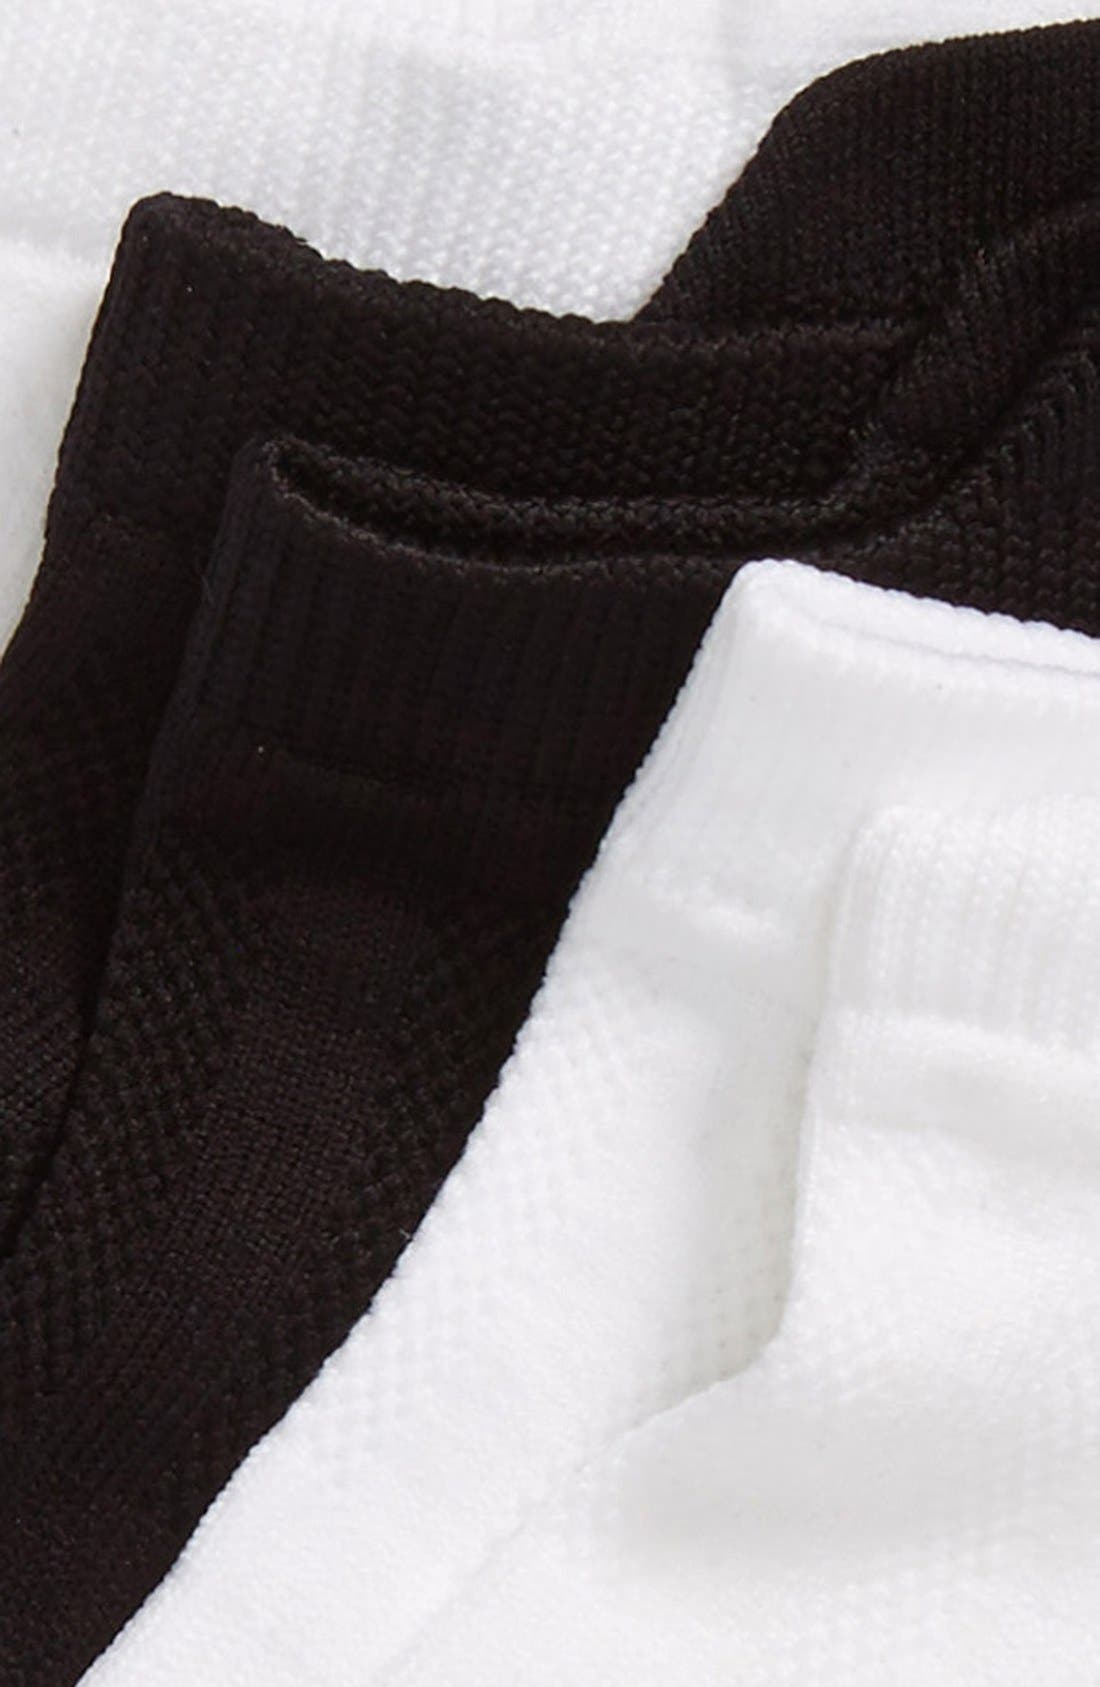 3-Pack Microfiber Tab Performance Socks,                             Alternate thumbnail 2, color,                             White/ Black/ White